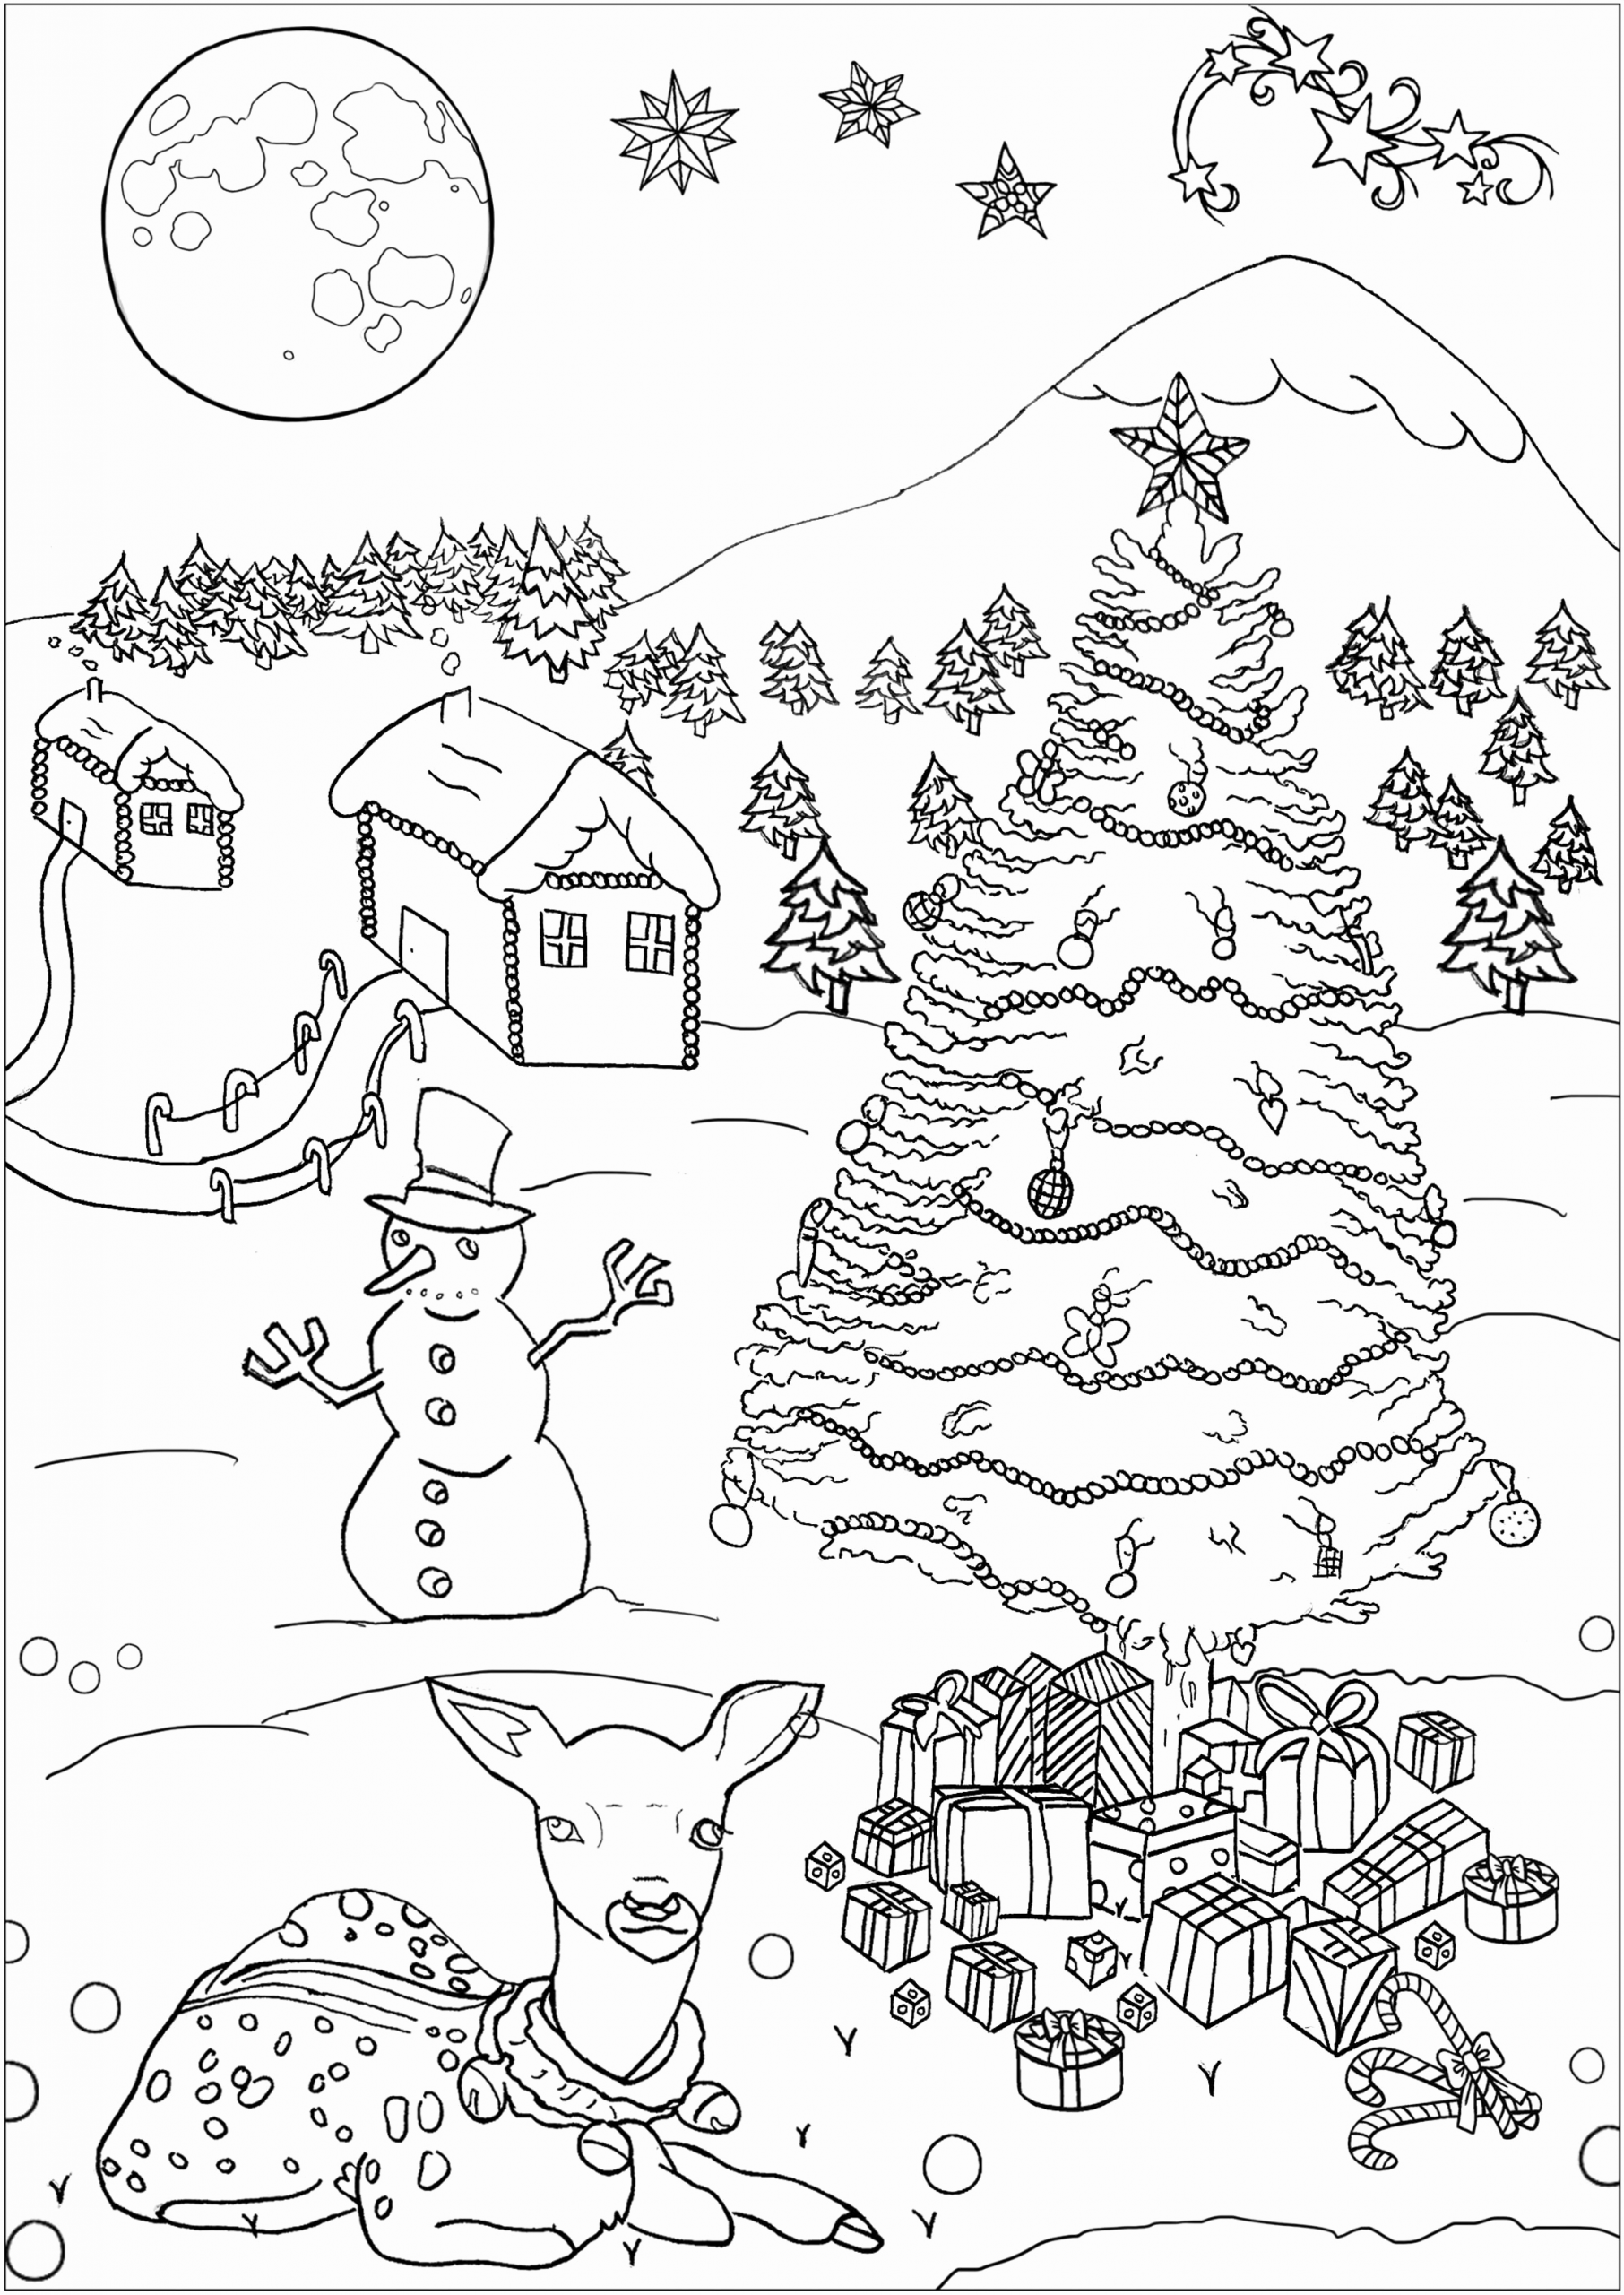 Detailed Christmas Coloring Pages Kids In 2020 Christmas Coloring Pages Free Christmas Coloring Pages Merry Christmas Coloring Pages